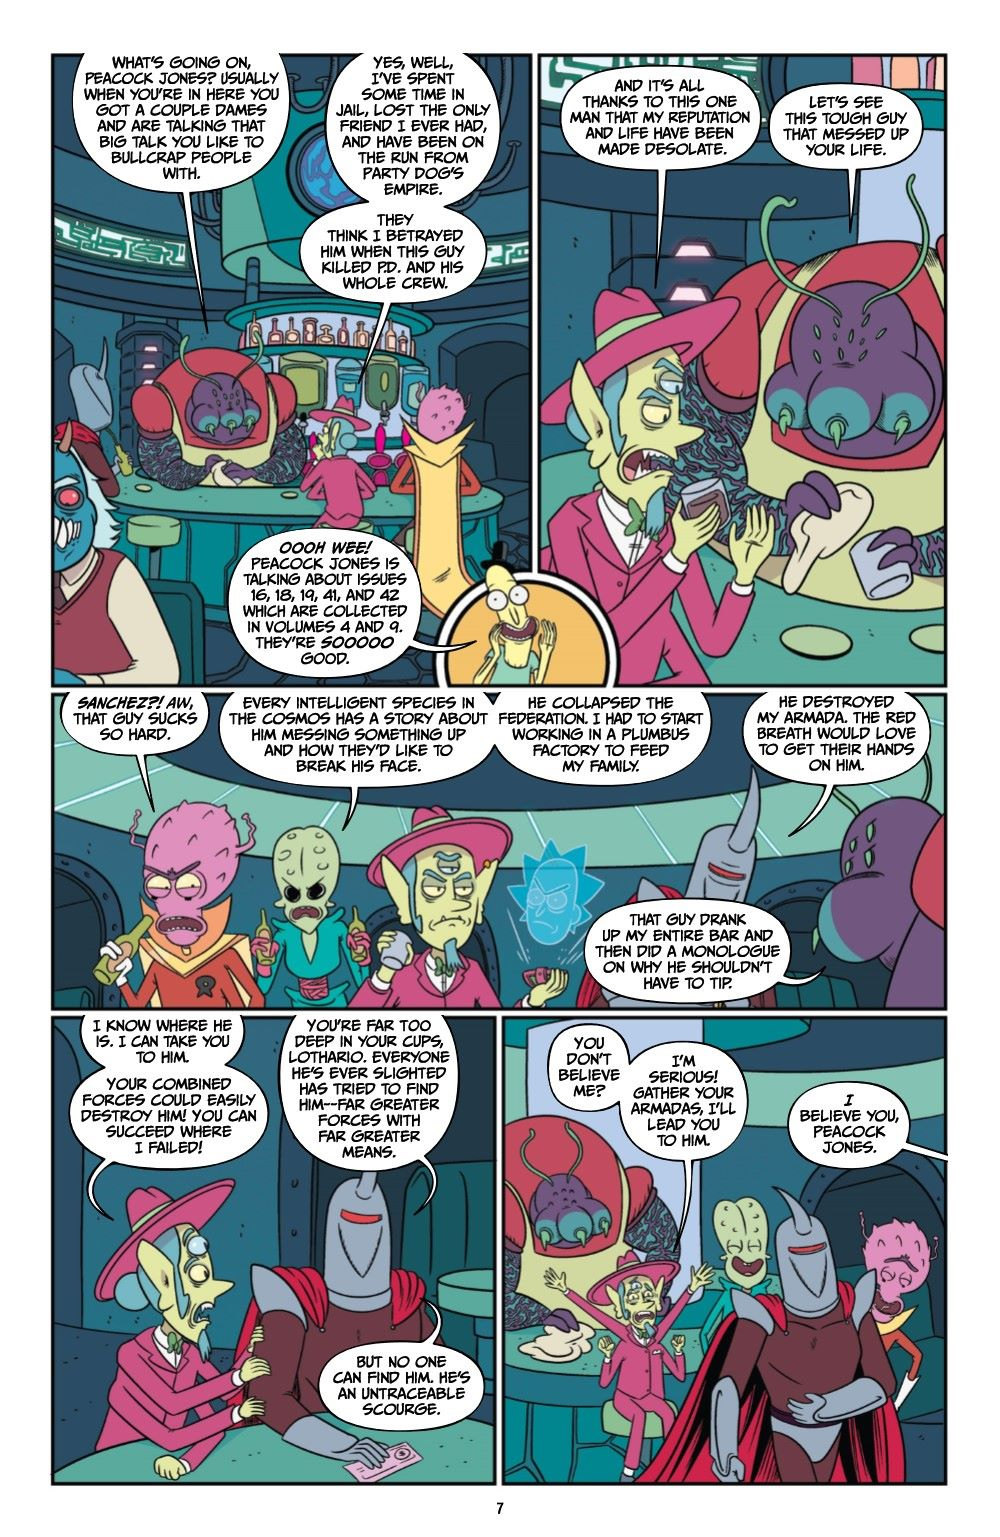 RICKMORTY-V12-TPB-REFERENCE-008 ComicList Previews: RICK AND MORTY VOLUME 12 TP